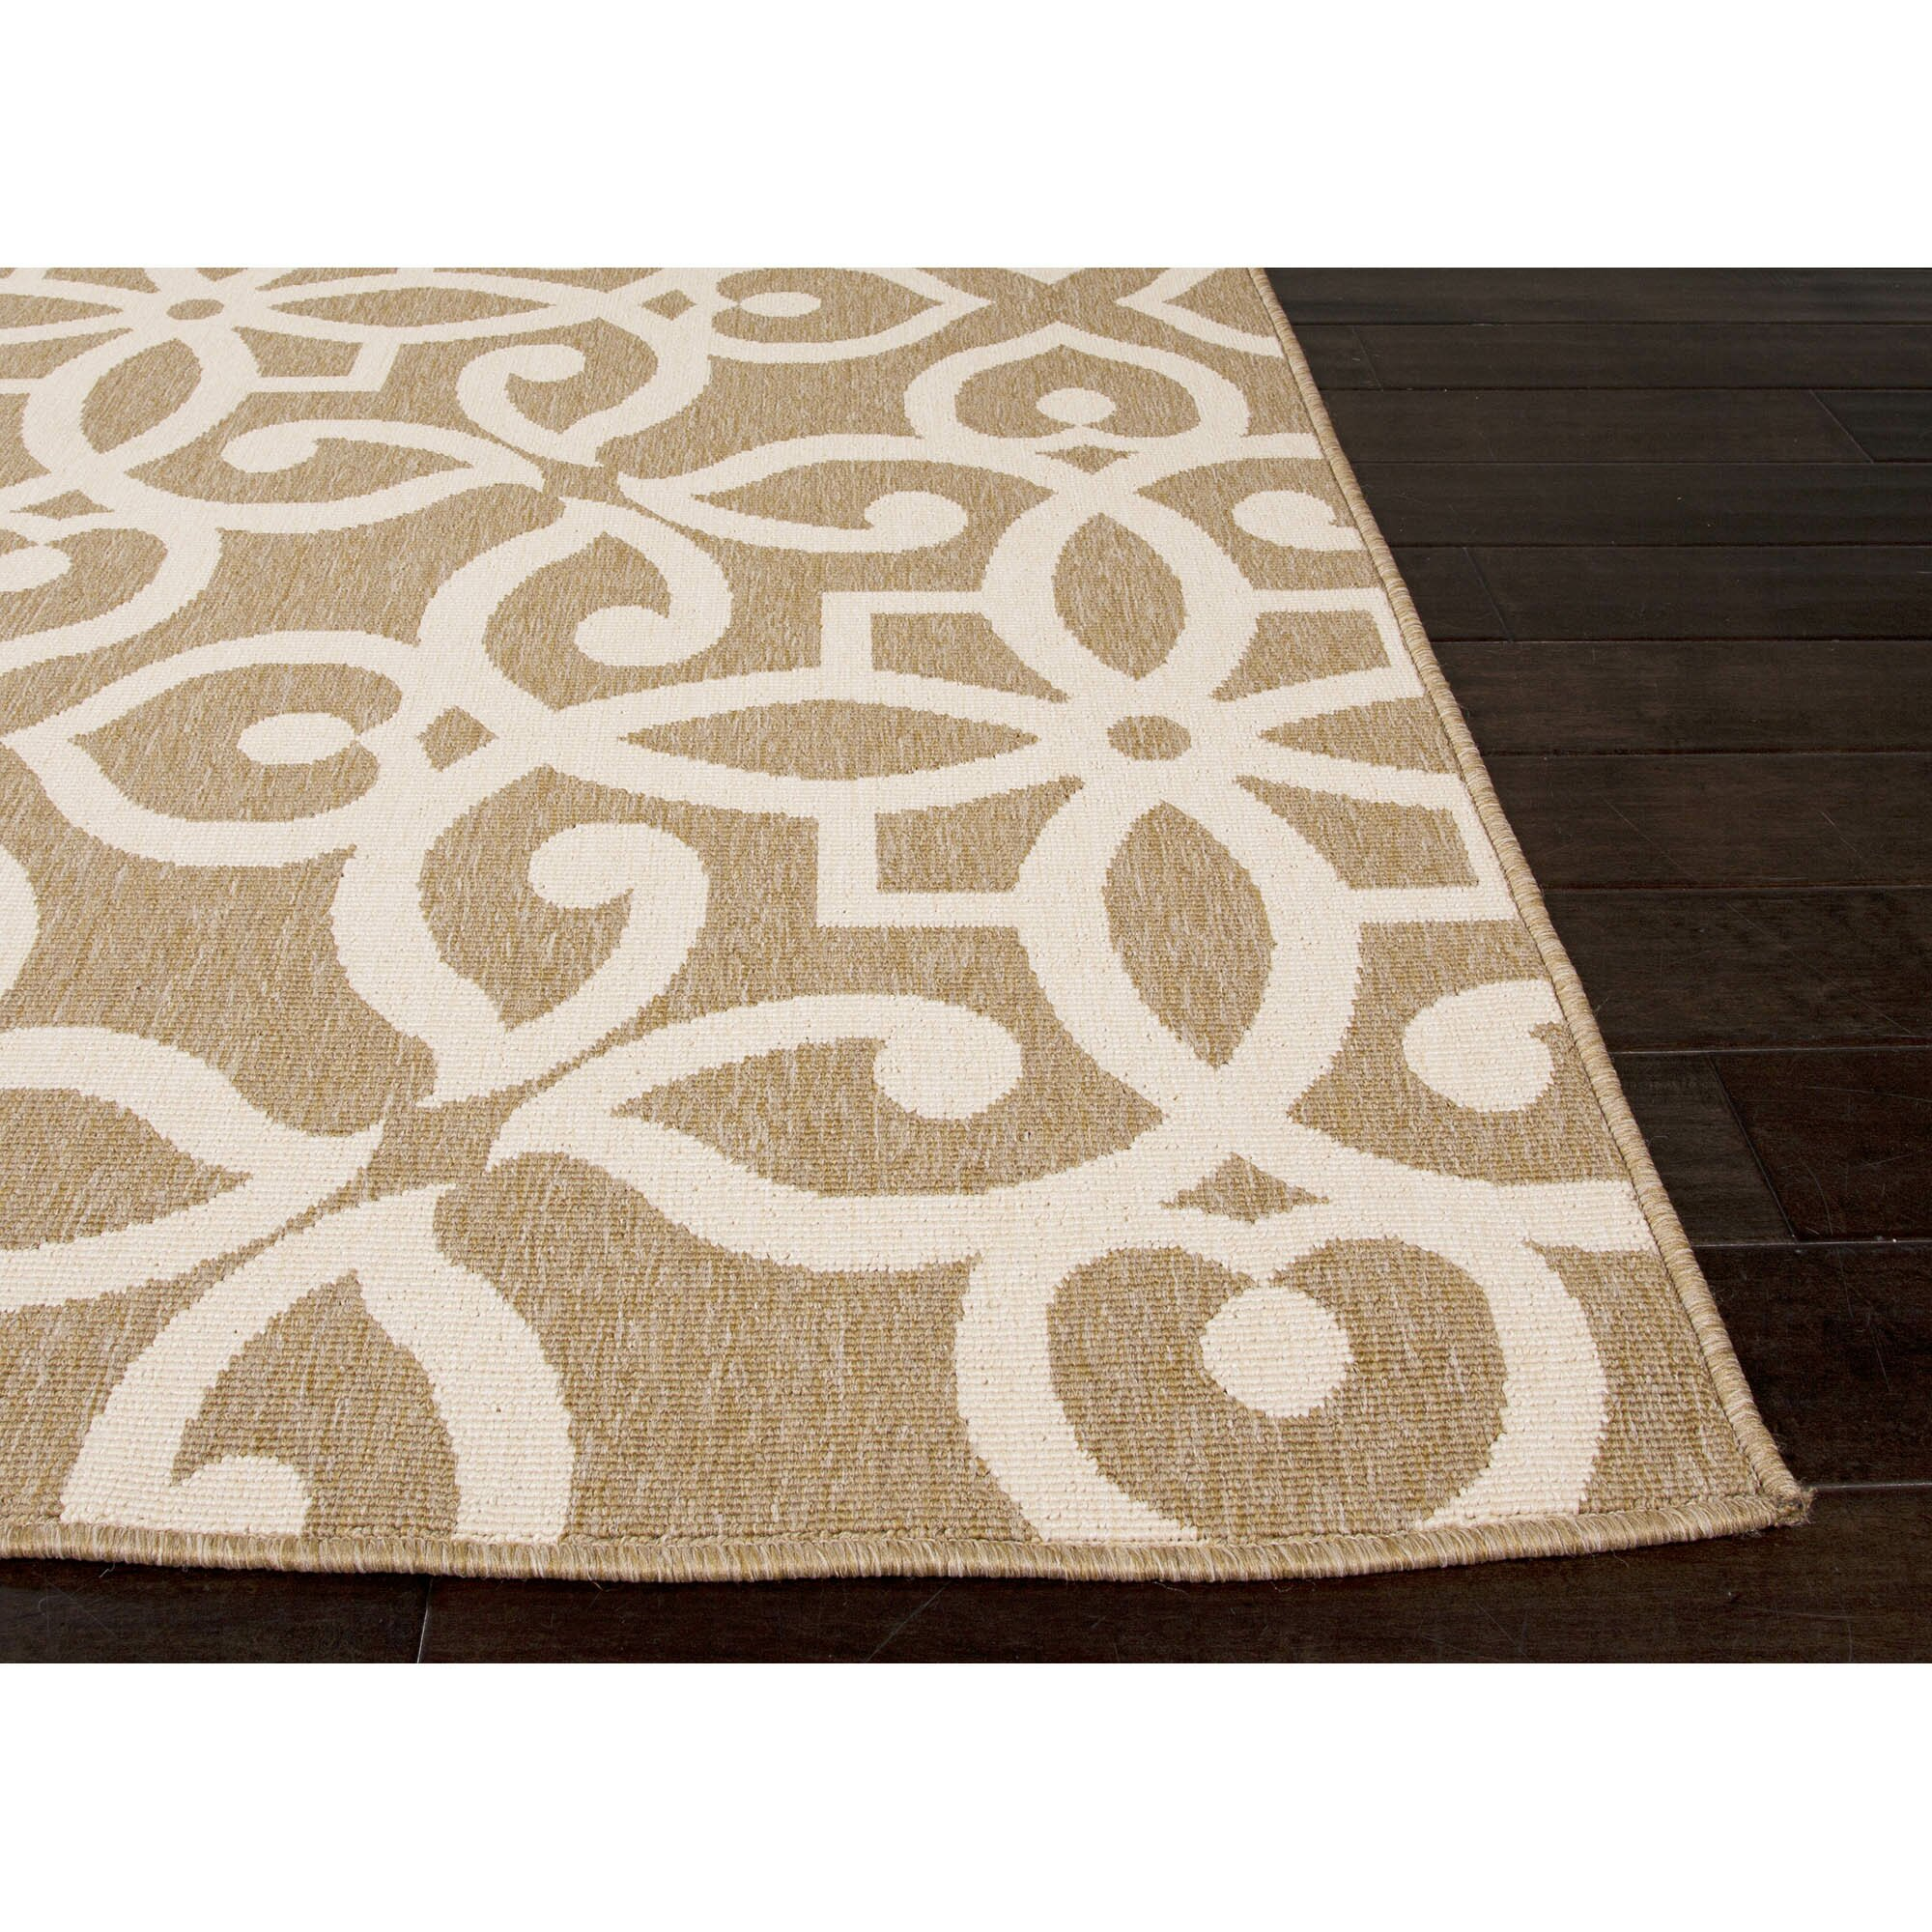 JaipurLiving Bloom Brown/Taupe Indoor/Outdoor Area Rug